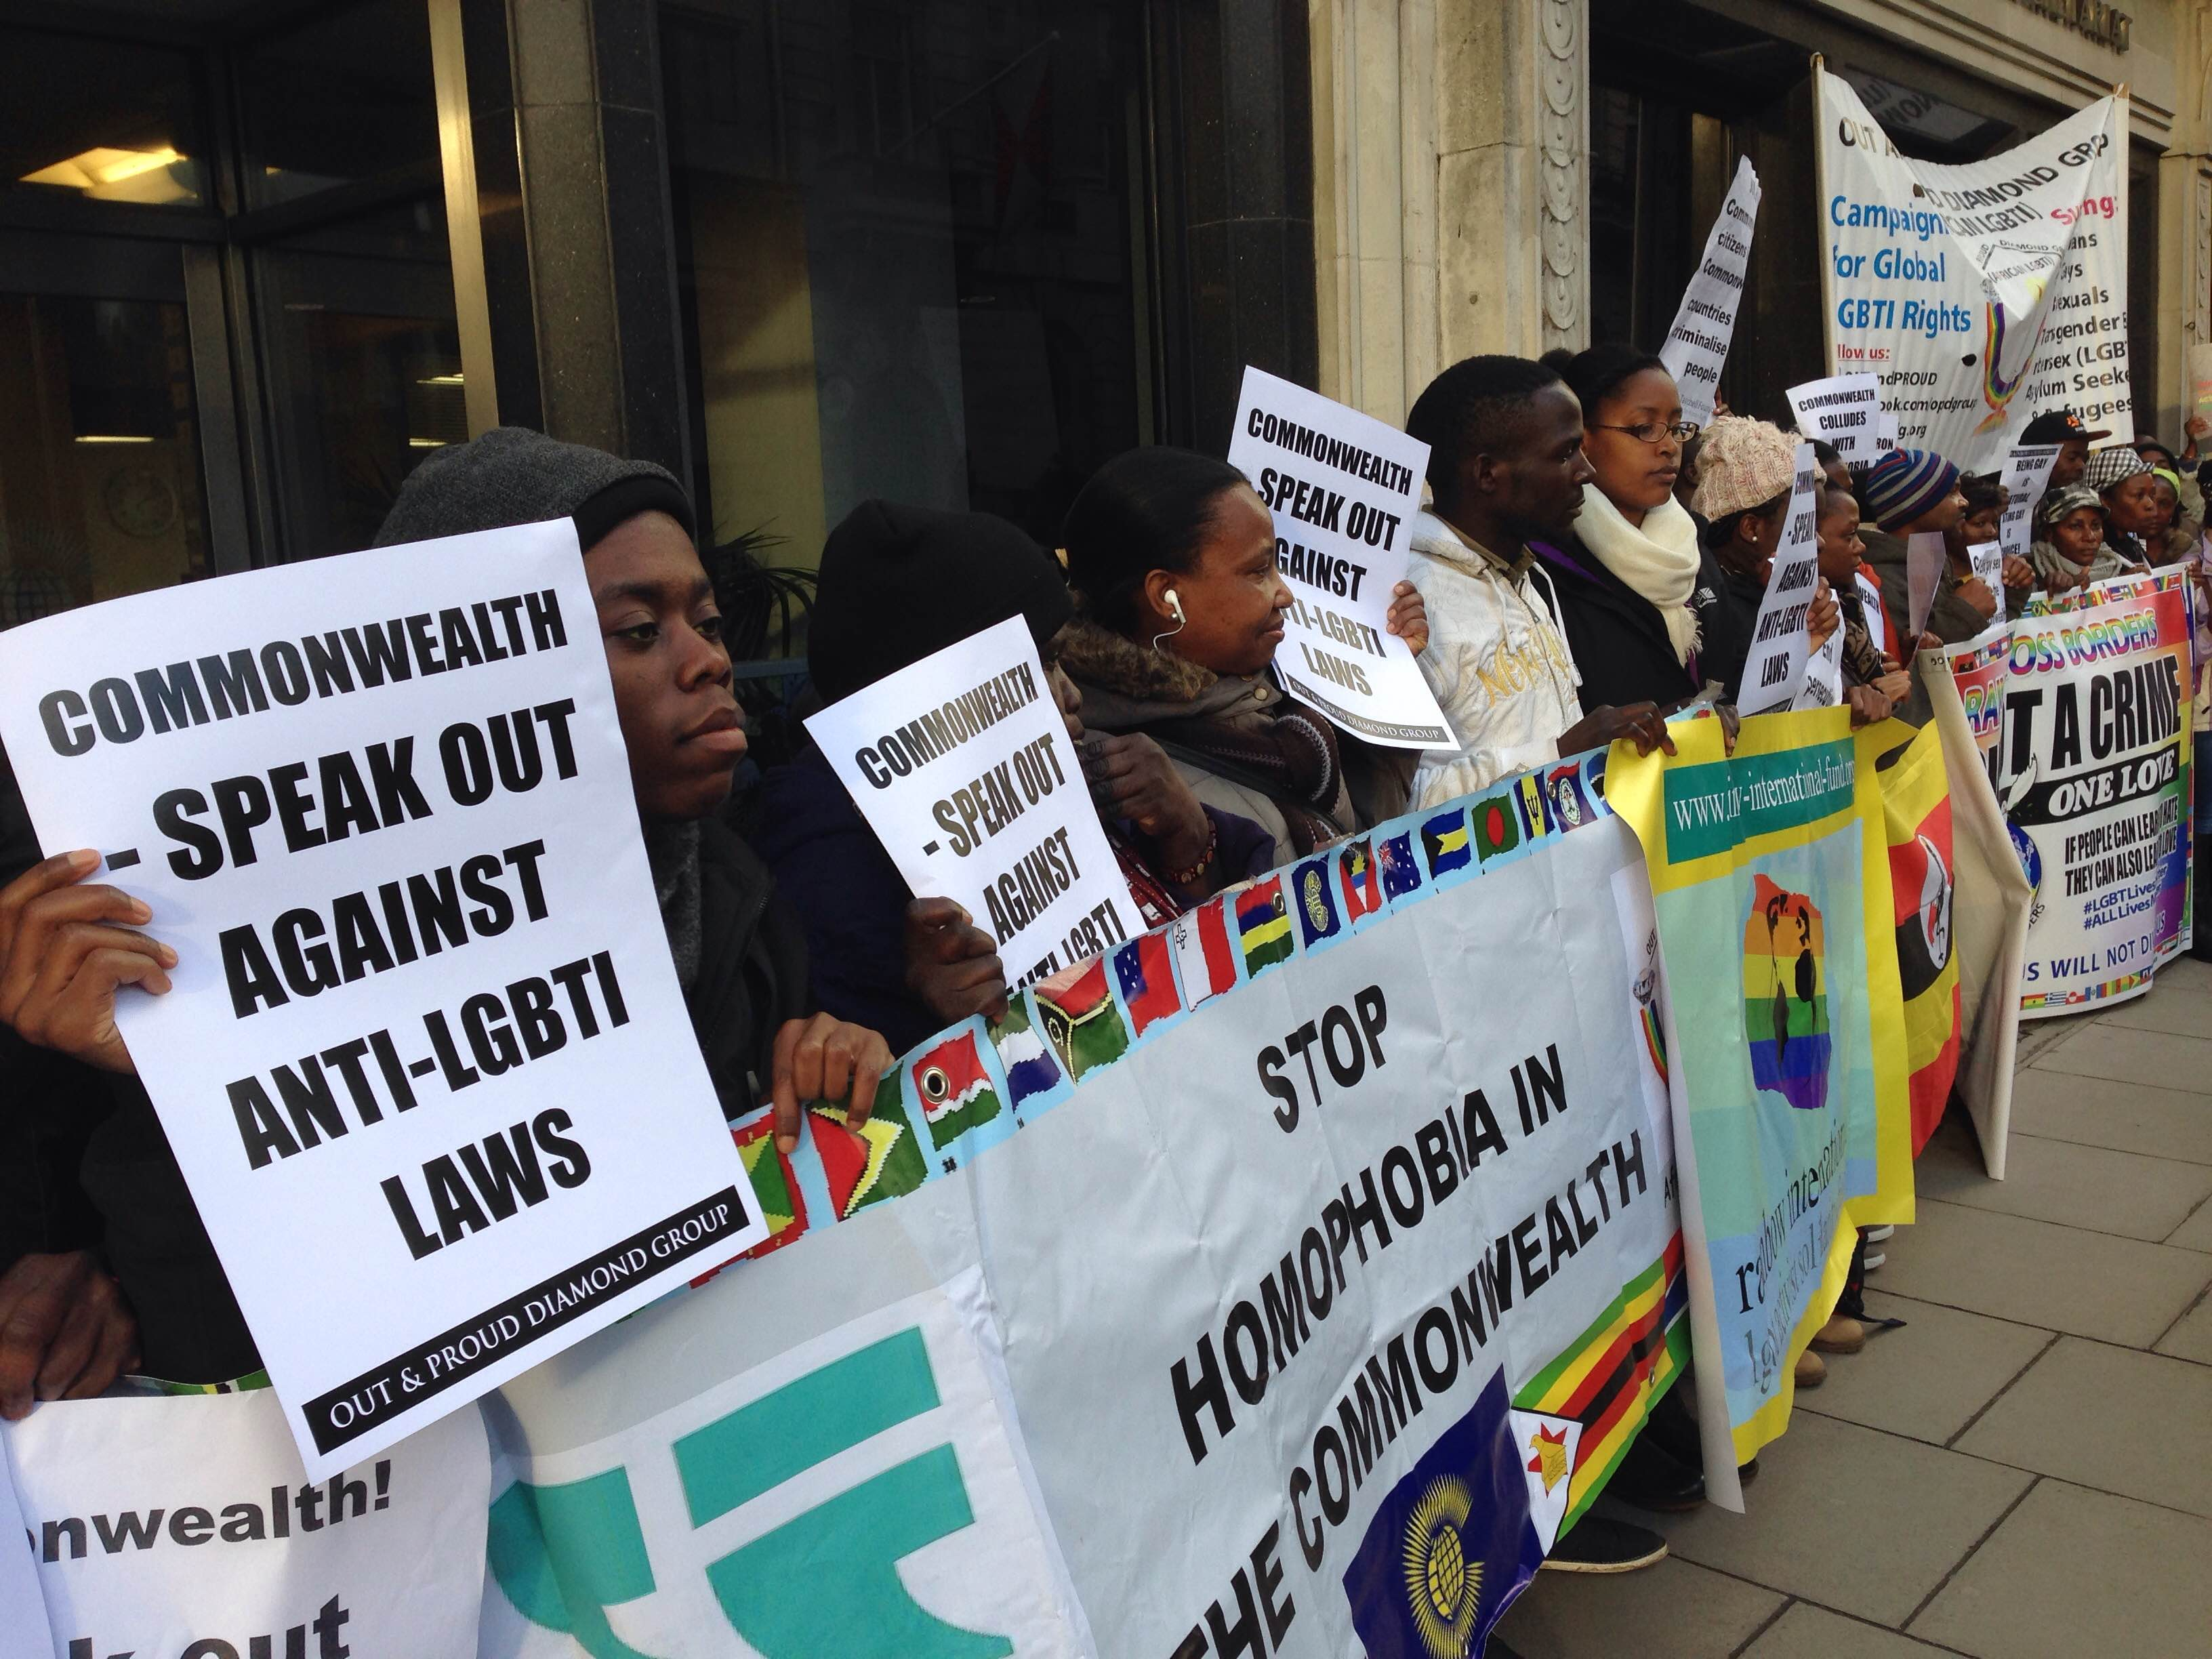 Protesters line up in London on Nov. 25, seeking repeal of anti-homosexuality laws throughout the Commonwealth. (Photo courtesy of Peter Tatchell Foundation)